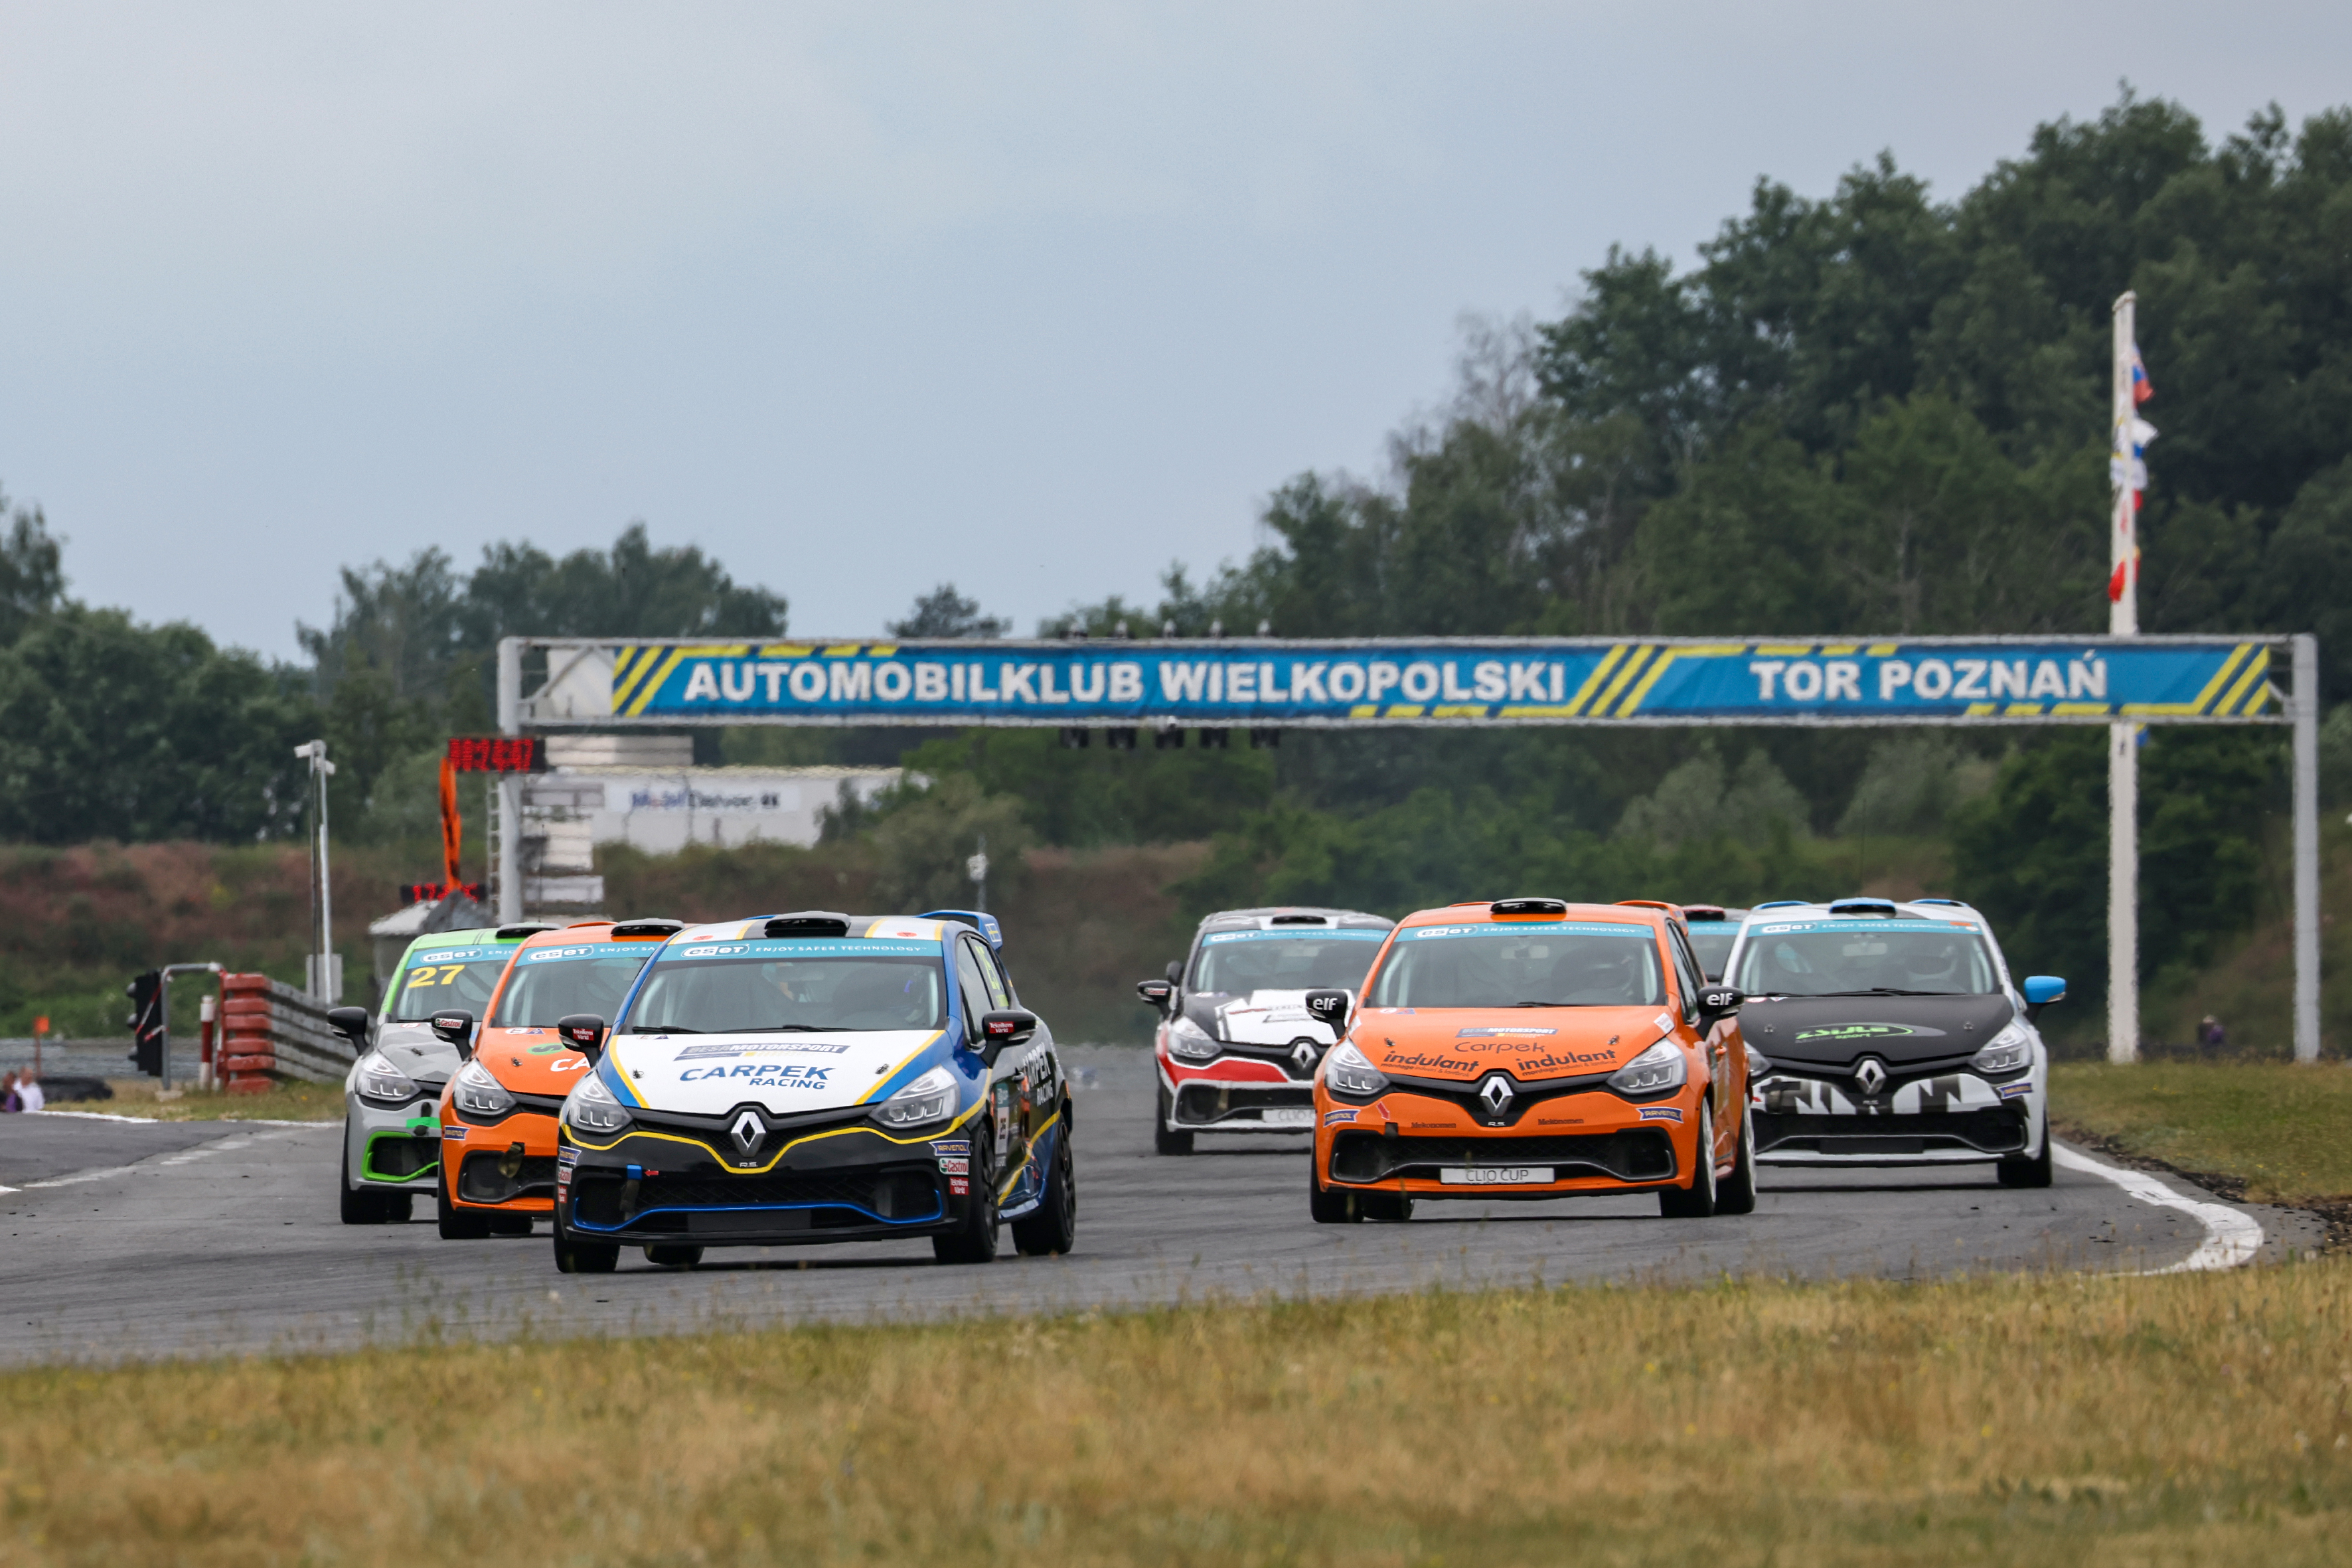 Clio Cup Bohemia continues at Grobnik, is Carpek Service going to take another win?